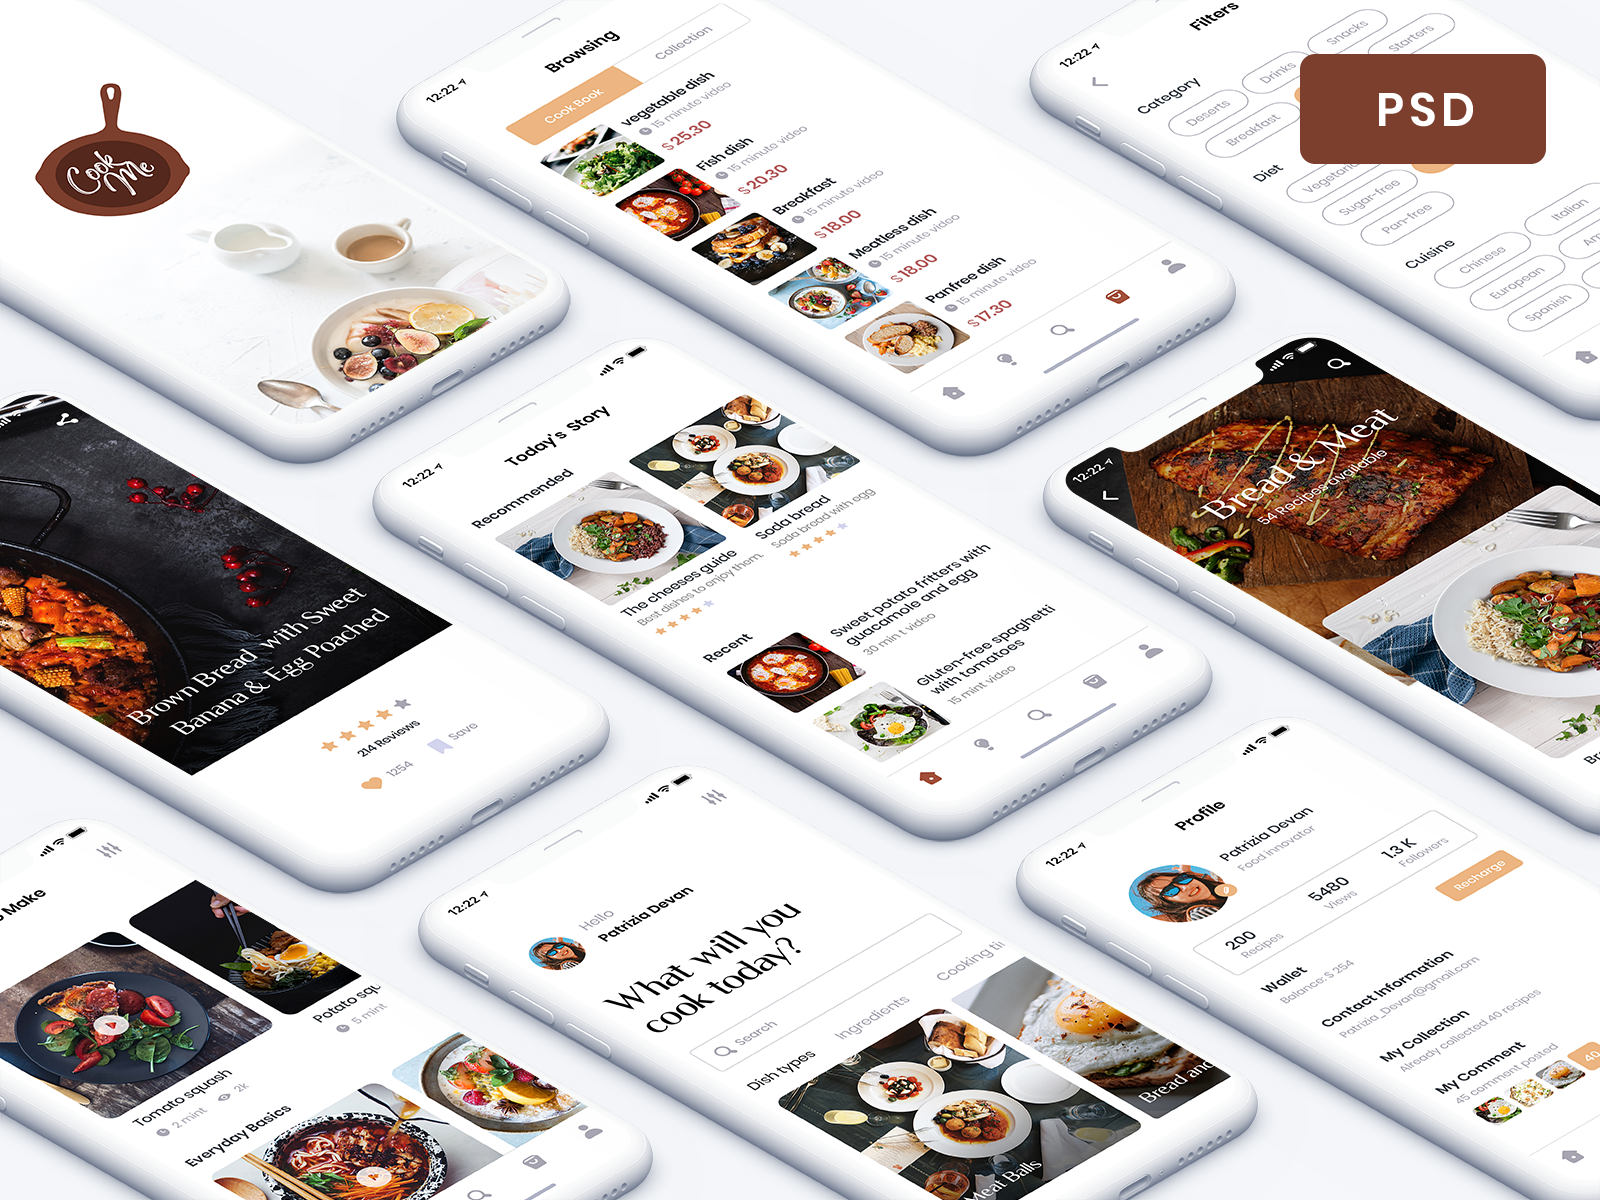 Recipe App - Free UI Kit chef kit ui ux profile search restaurant card freebies uikit .psd psd free mobile ios app blog cooking food recipe